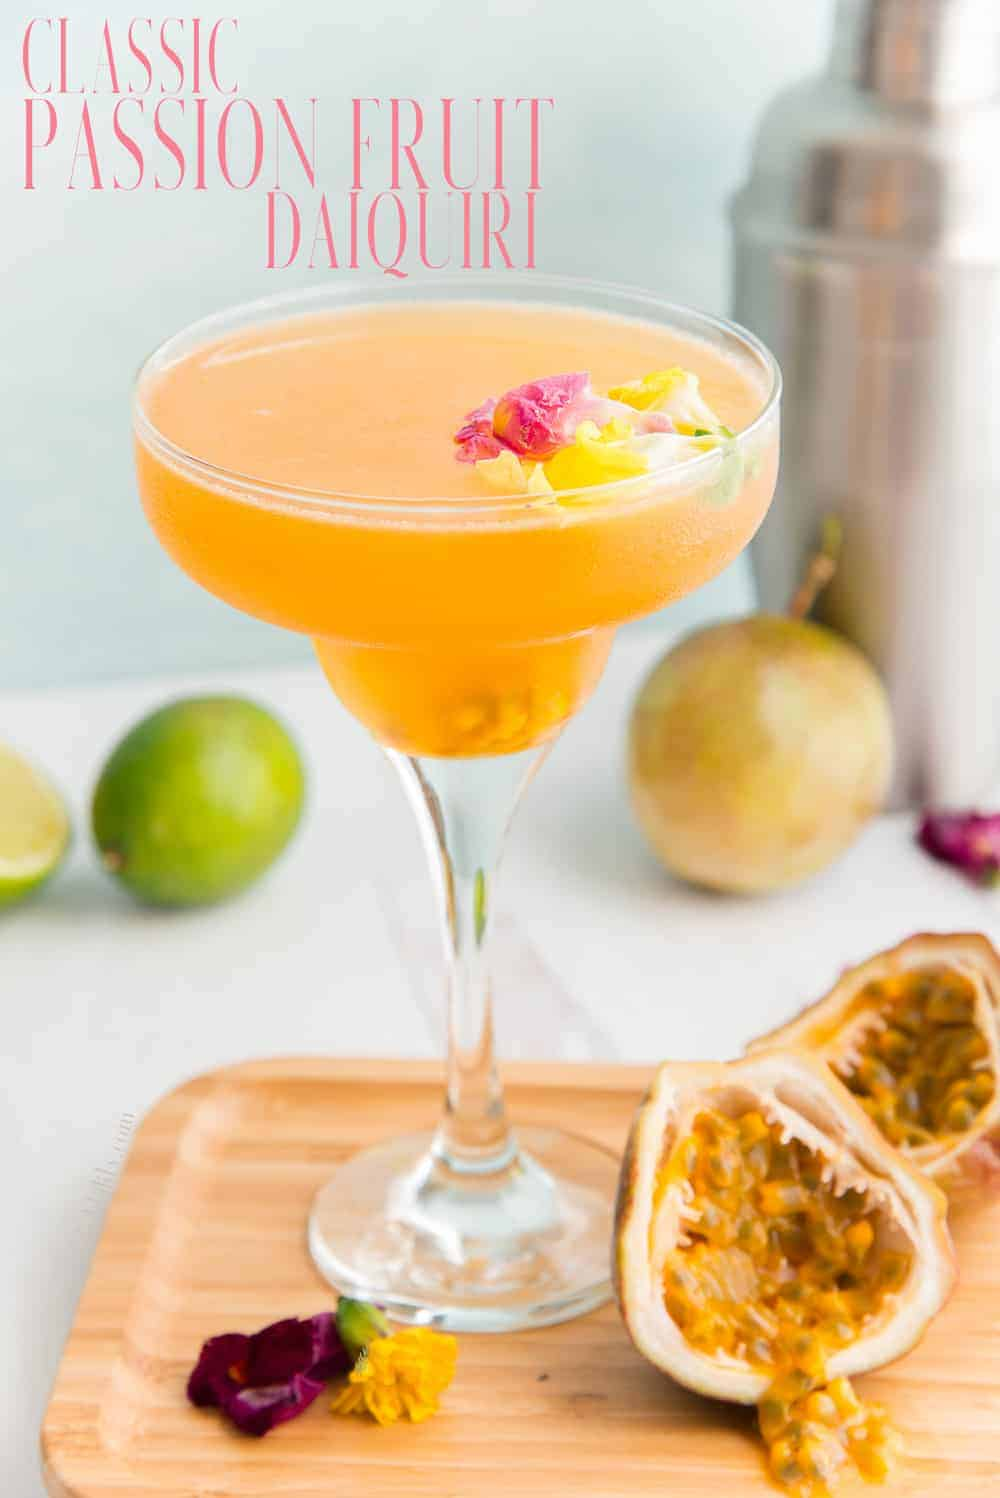 The Classic Passion Fruit Daiquiri is shaken, not frozen, but that doesn't mean it lacks in fruity flavor or punch. Made with white rum and fresh citrus juice, the passion fruit flavor is sure to become your new favorite. #passionfruitdrink #parcha #daiquiri #passionfruitdaiquiri #classicdaiquiri #rumdrinks #rumcocktail #bacardirum #bebidasderon #puertoricanrecipe #shakencocktails #jugodeparcha via @ediblesense